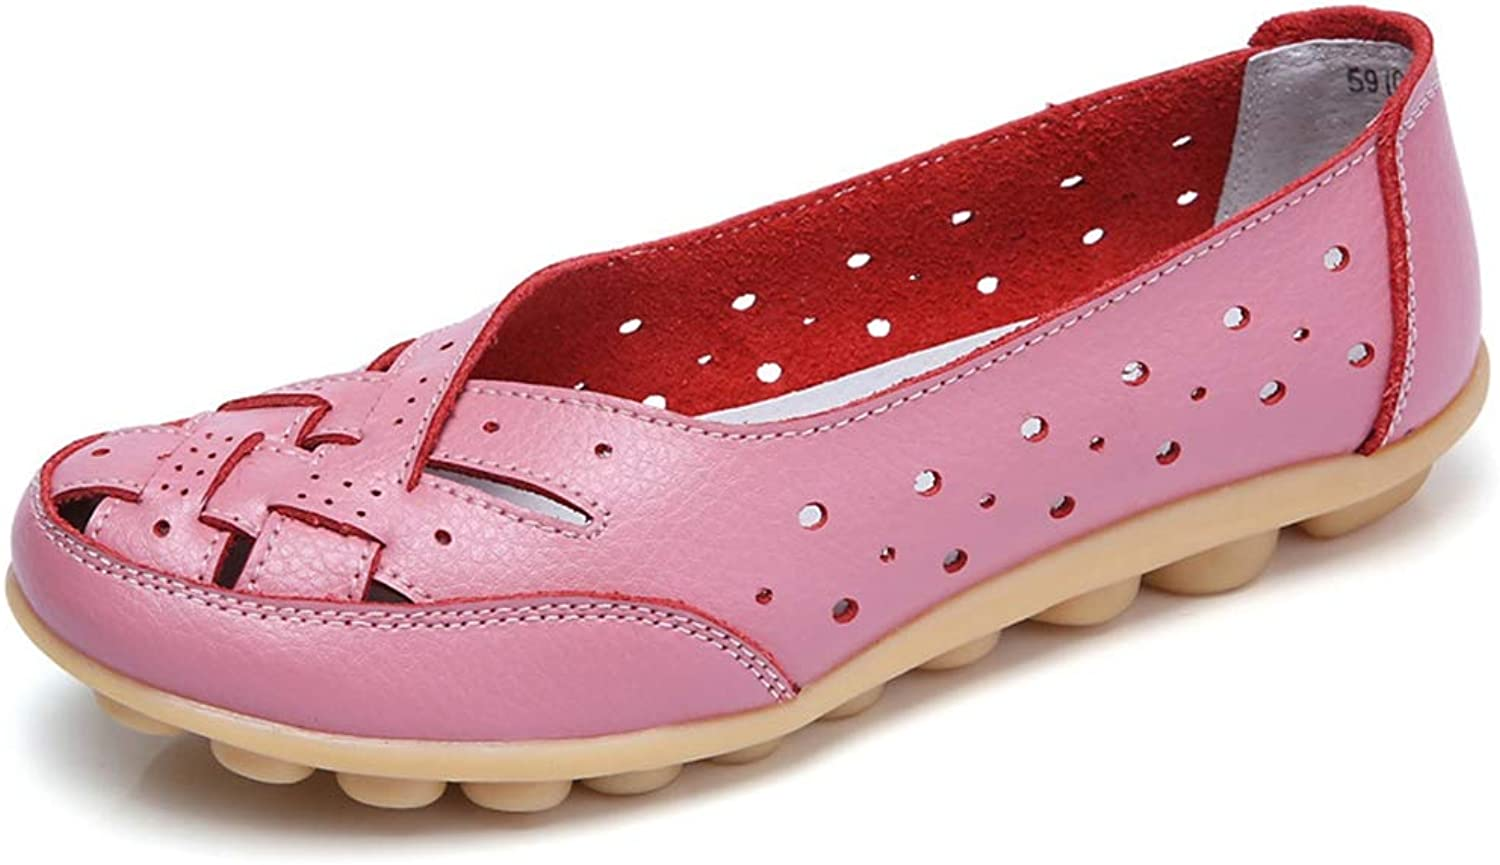 T-JULY Flats for Women Comrfort Genuine Leather Flat shoes Woman Slipony Loafers Ballet shoes Female Moccasins Plus Size